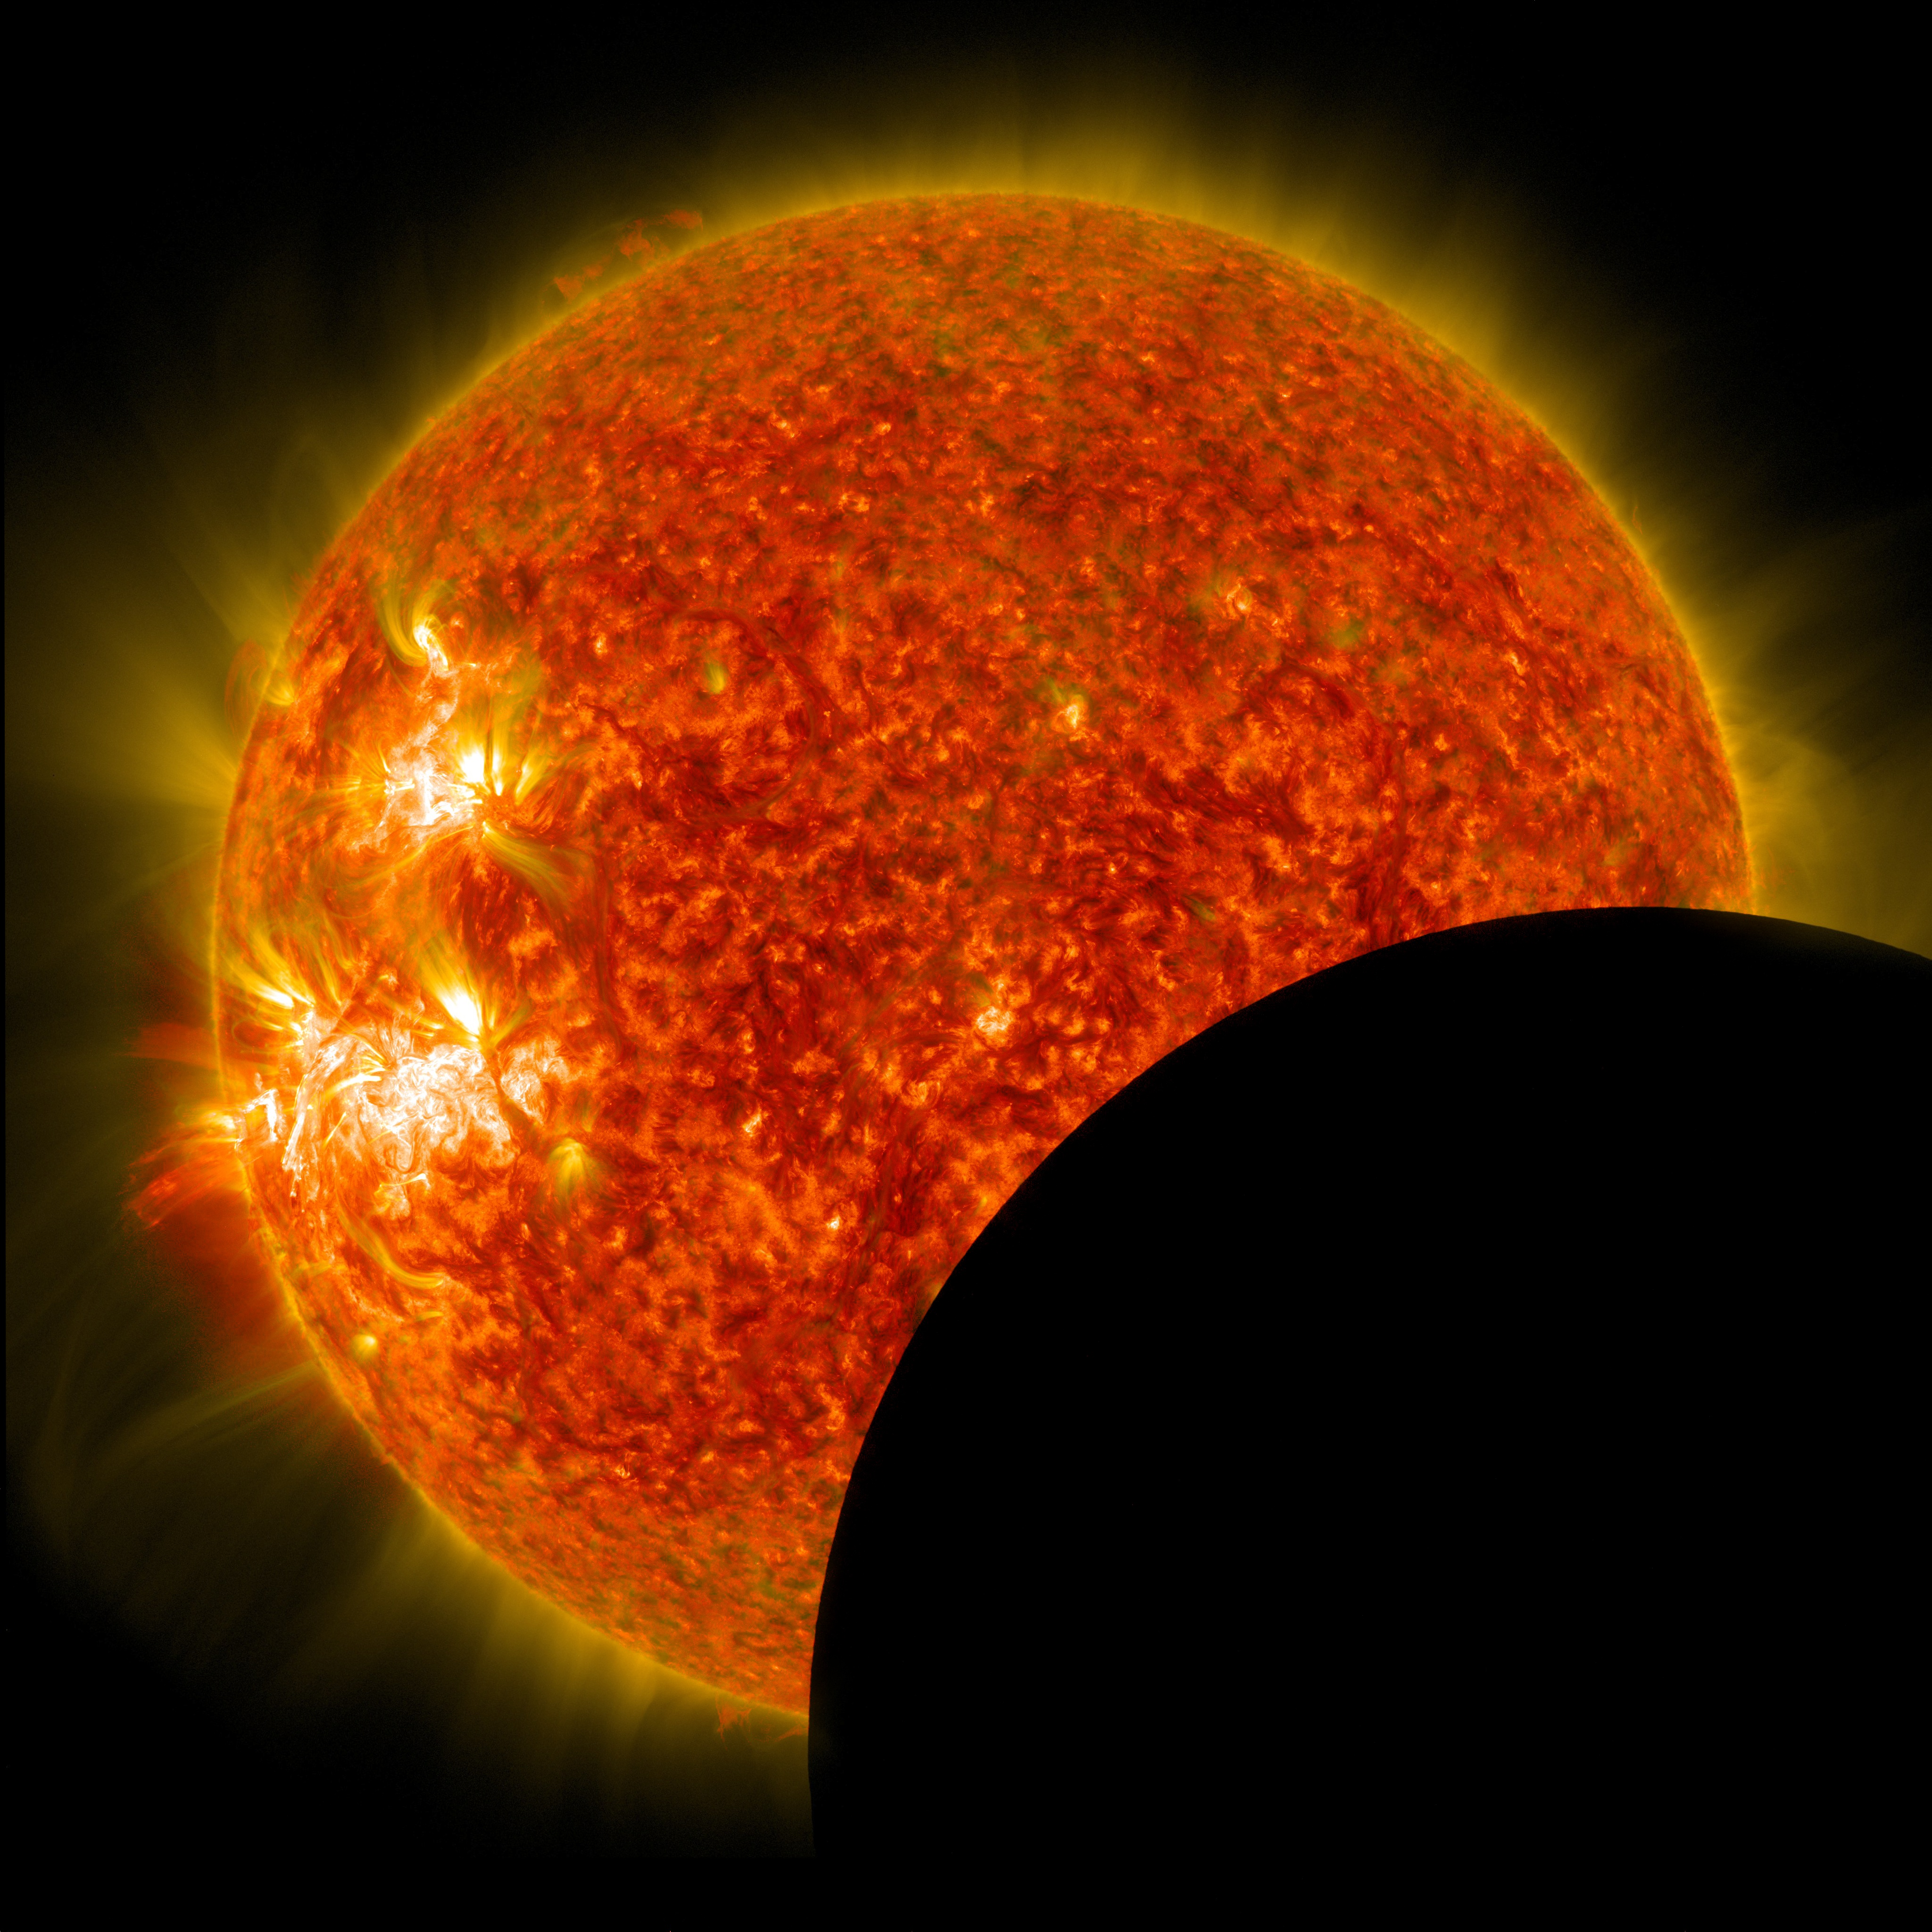 Nasa Recommends Safety Tips To View The August Solar Eclipse Nasa